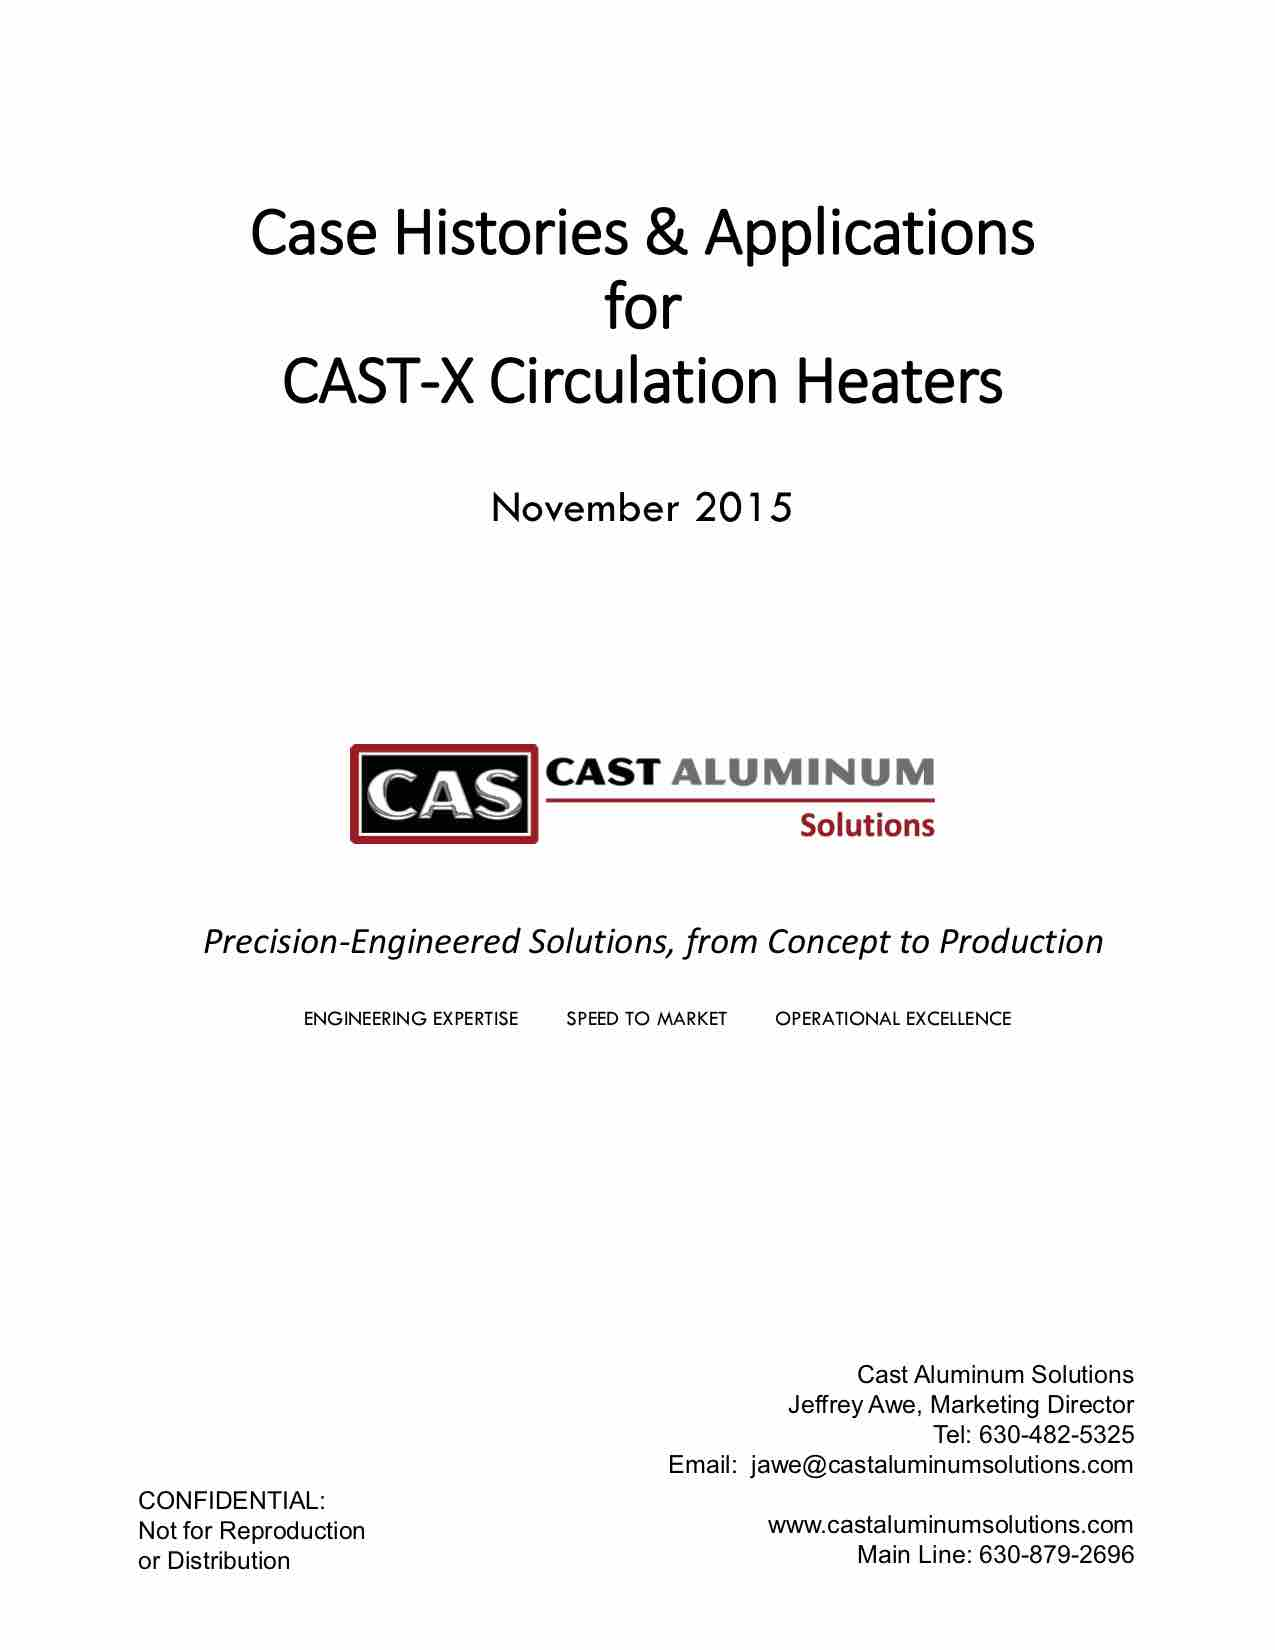 CAST X Circulation Heater Case Studies (dragged)